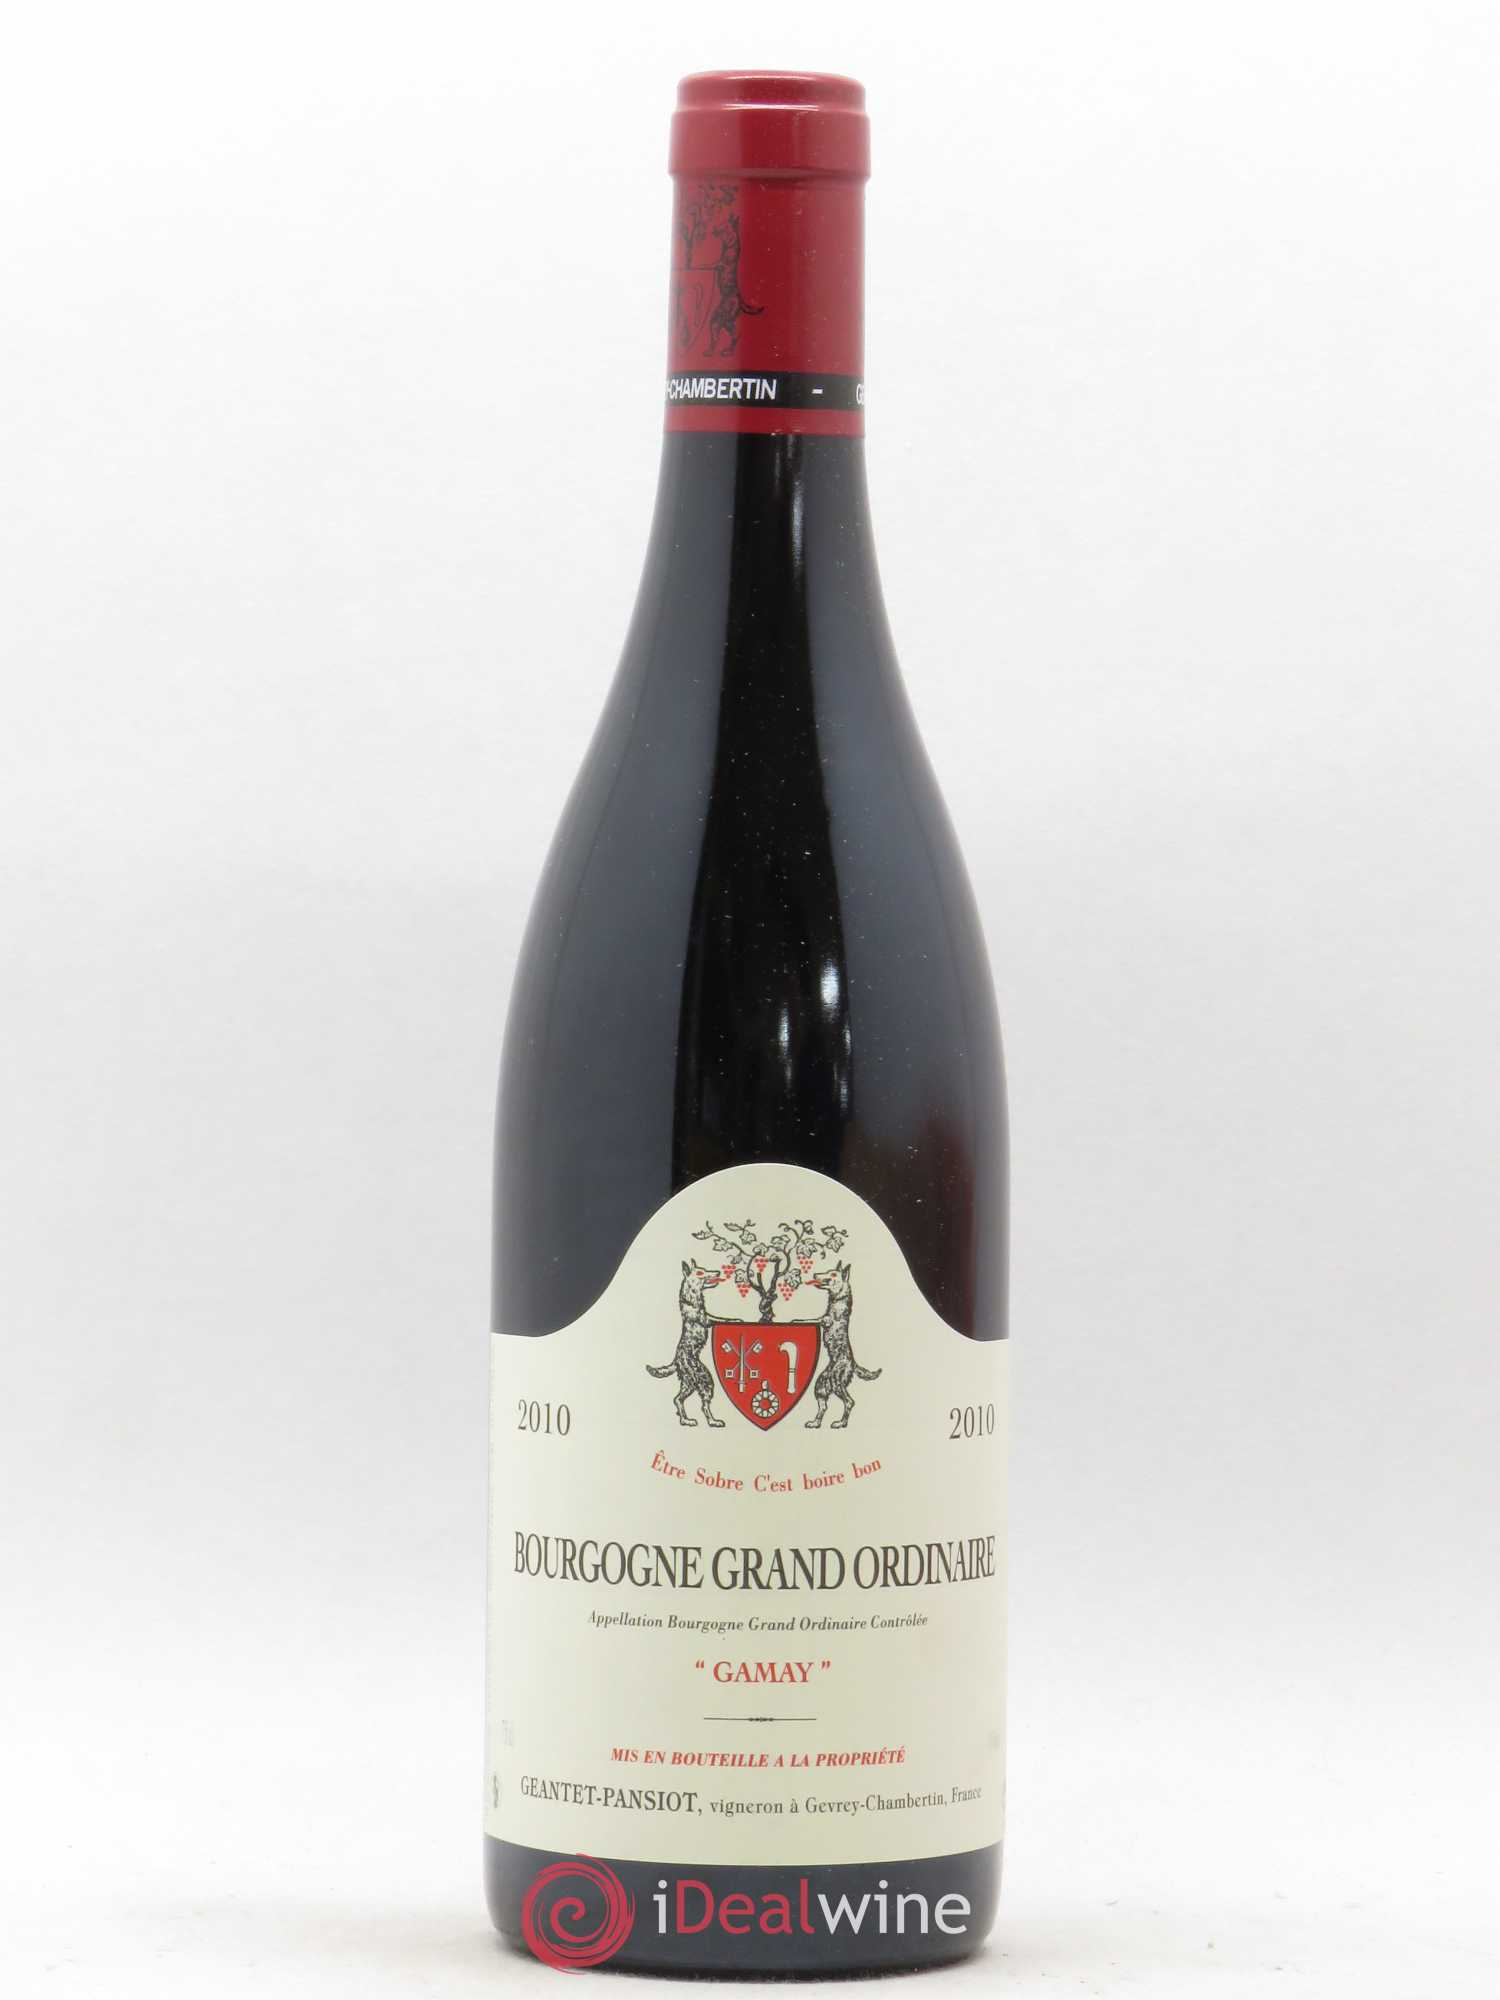 Bourgogne Grand Ordinaire Gamay Geantet Pansiot